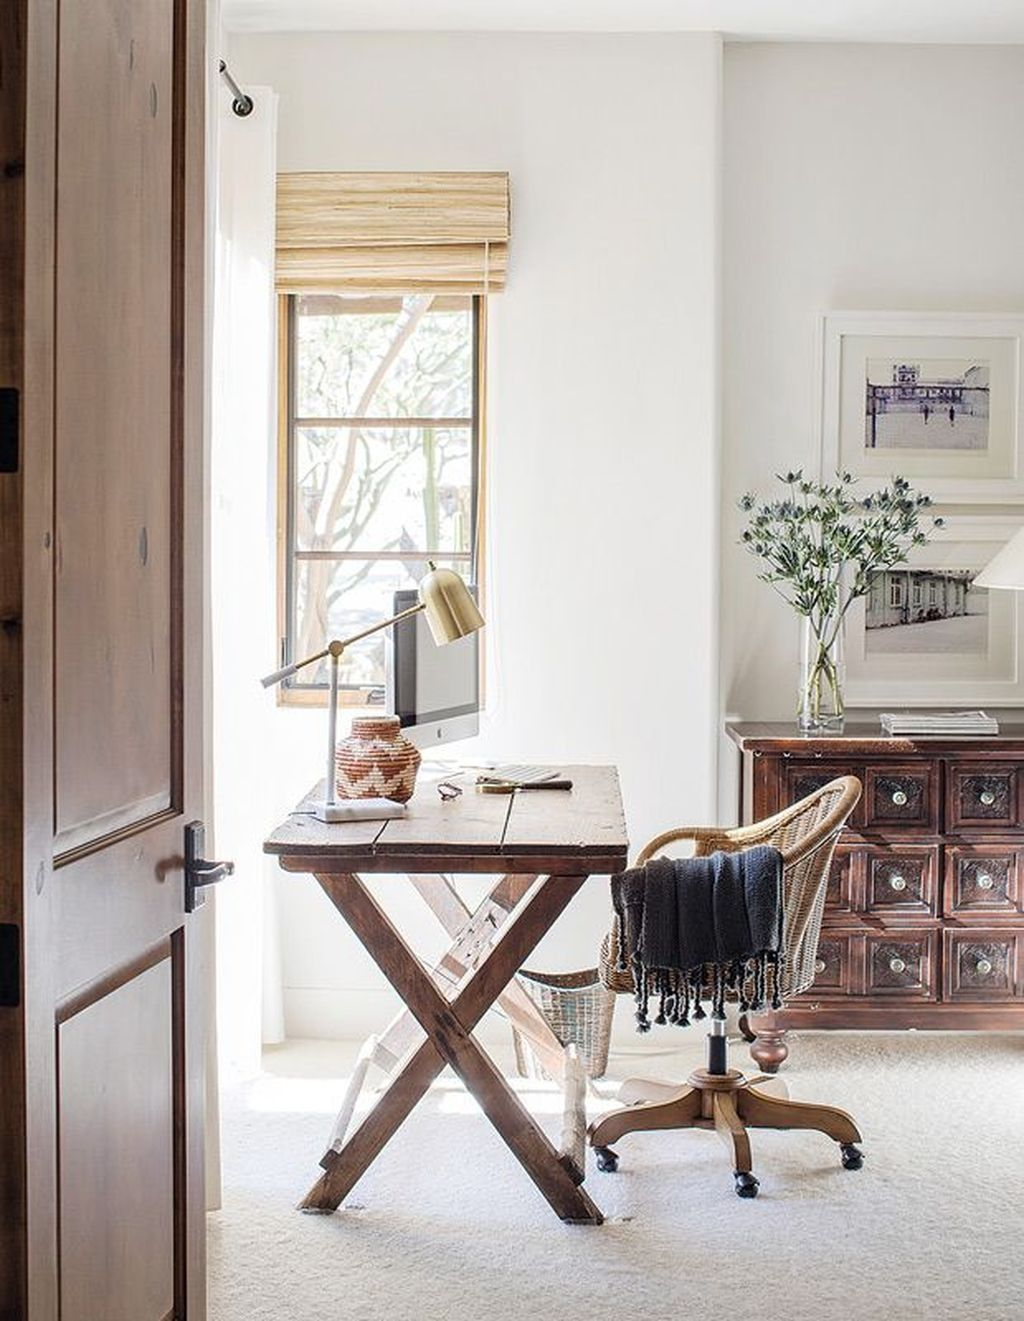 38 Splendid Spring Home Office Decoration Ideas In 2020 Home